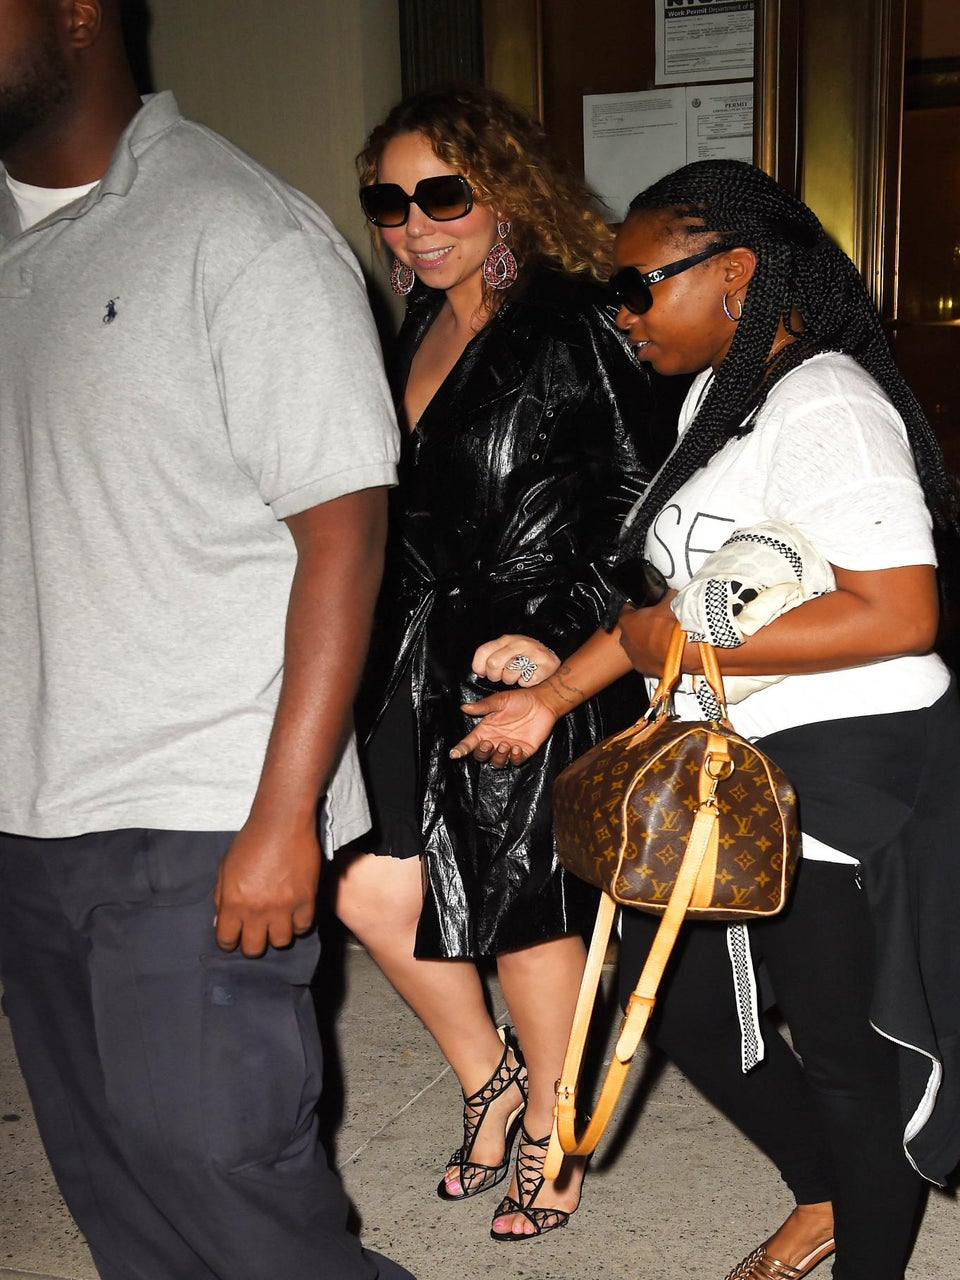 Photo: Mariah Carey's First Outing Since Confirmed Separation from Nick Cannon